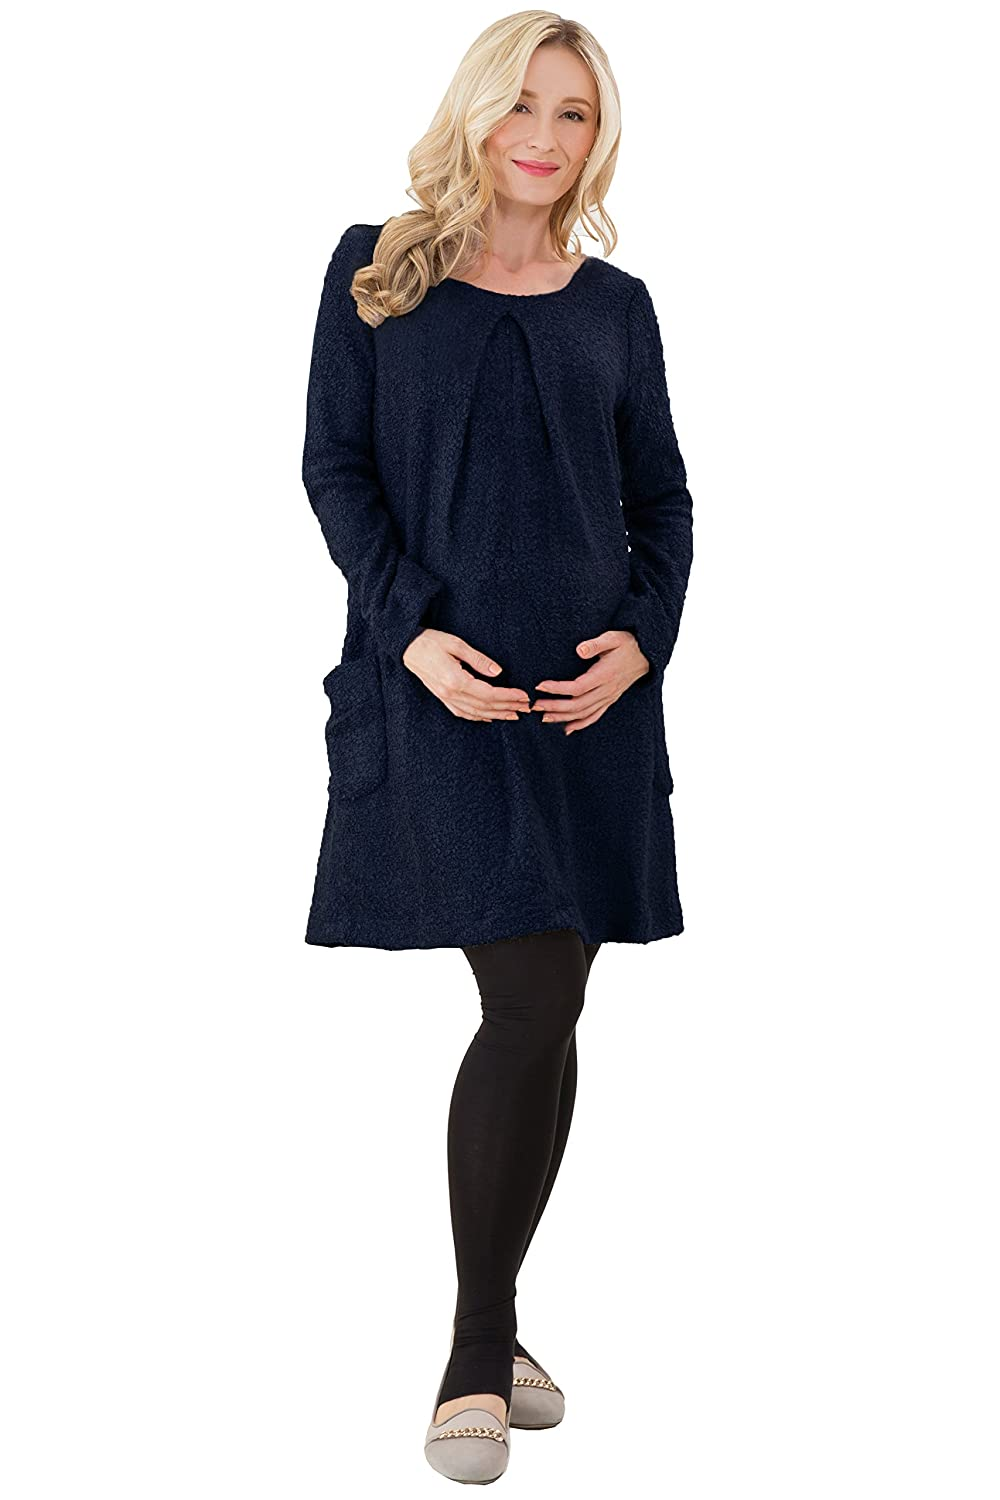 Sweet Mommy Maternity and Nursing Fluffy Tunic Dress Sweet Mommy Co. Ltd.